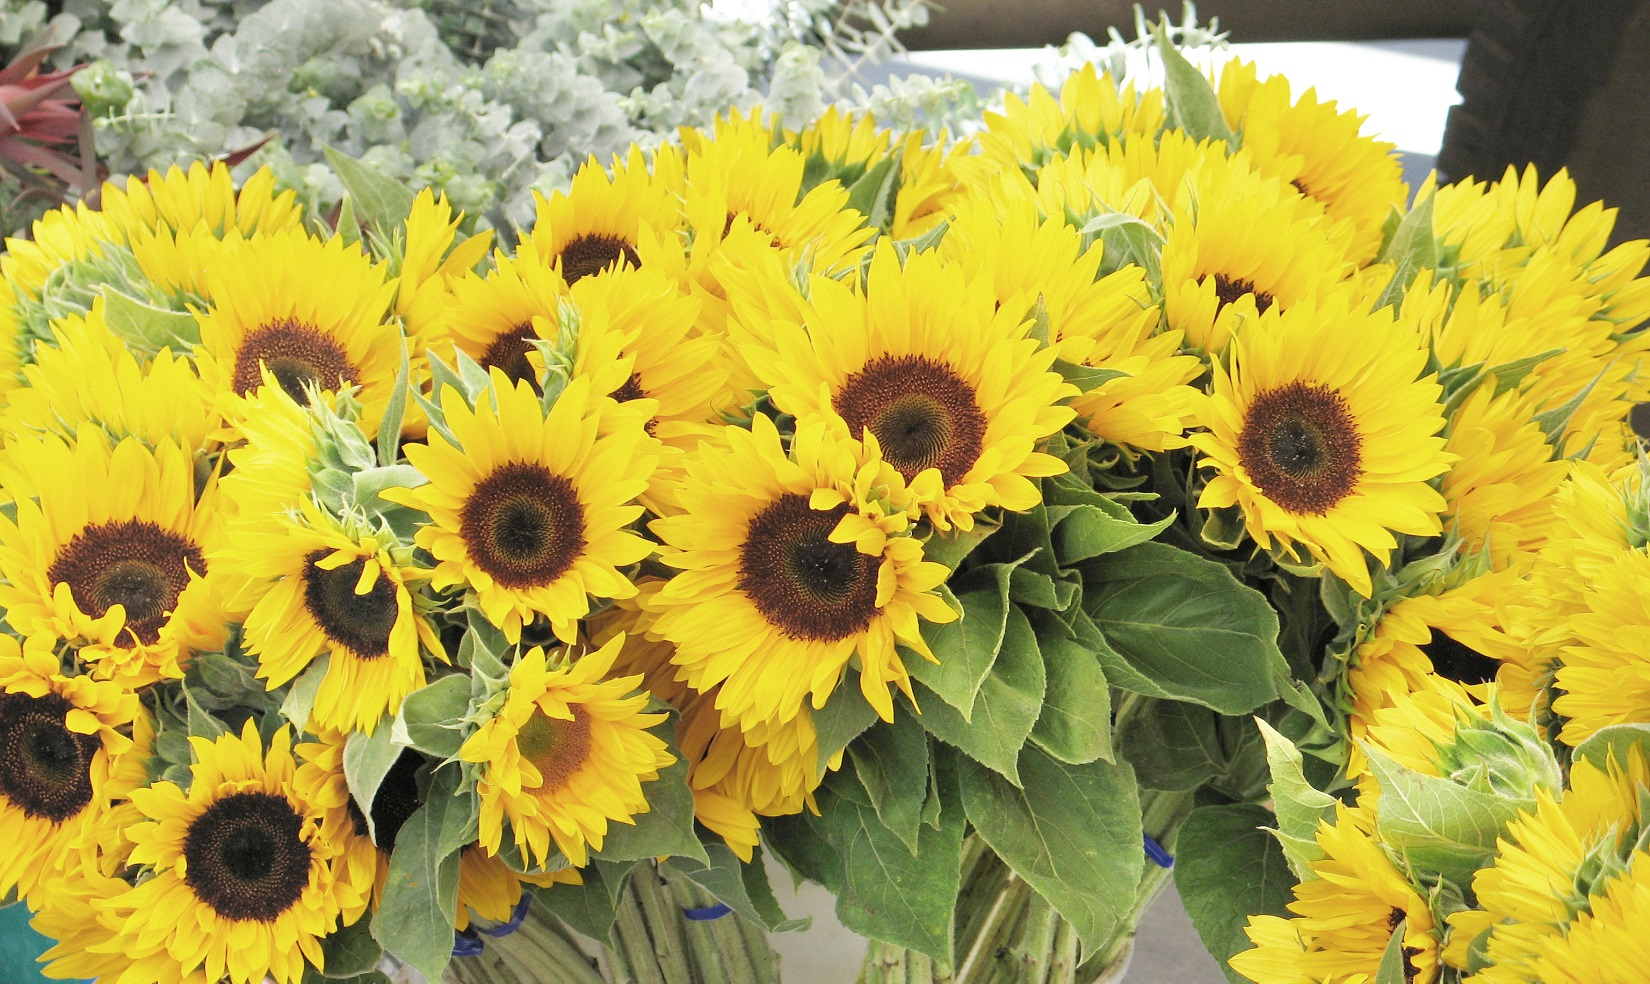 Sunflowers 2017 Crop Report for CNC